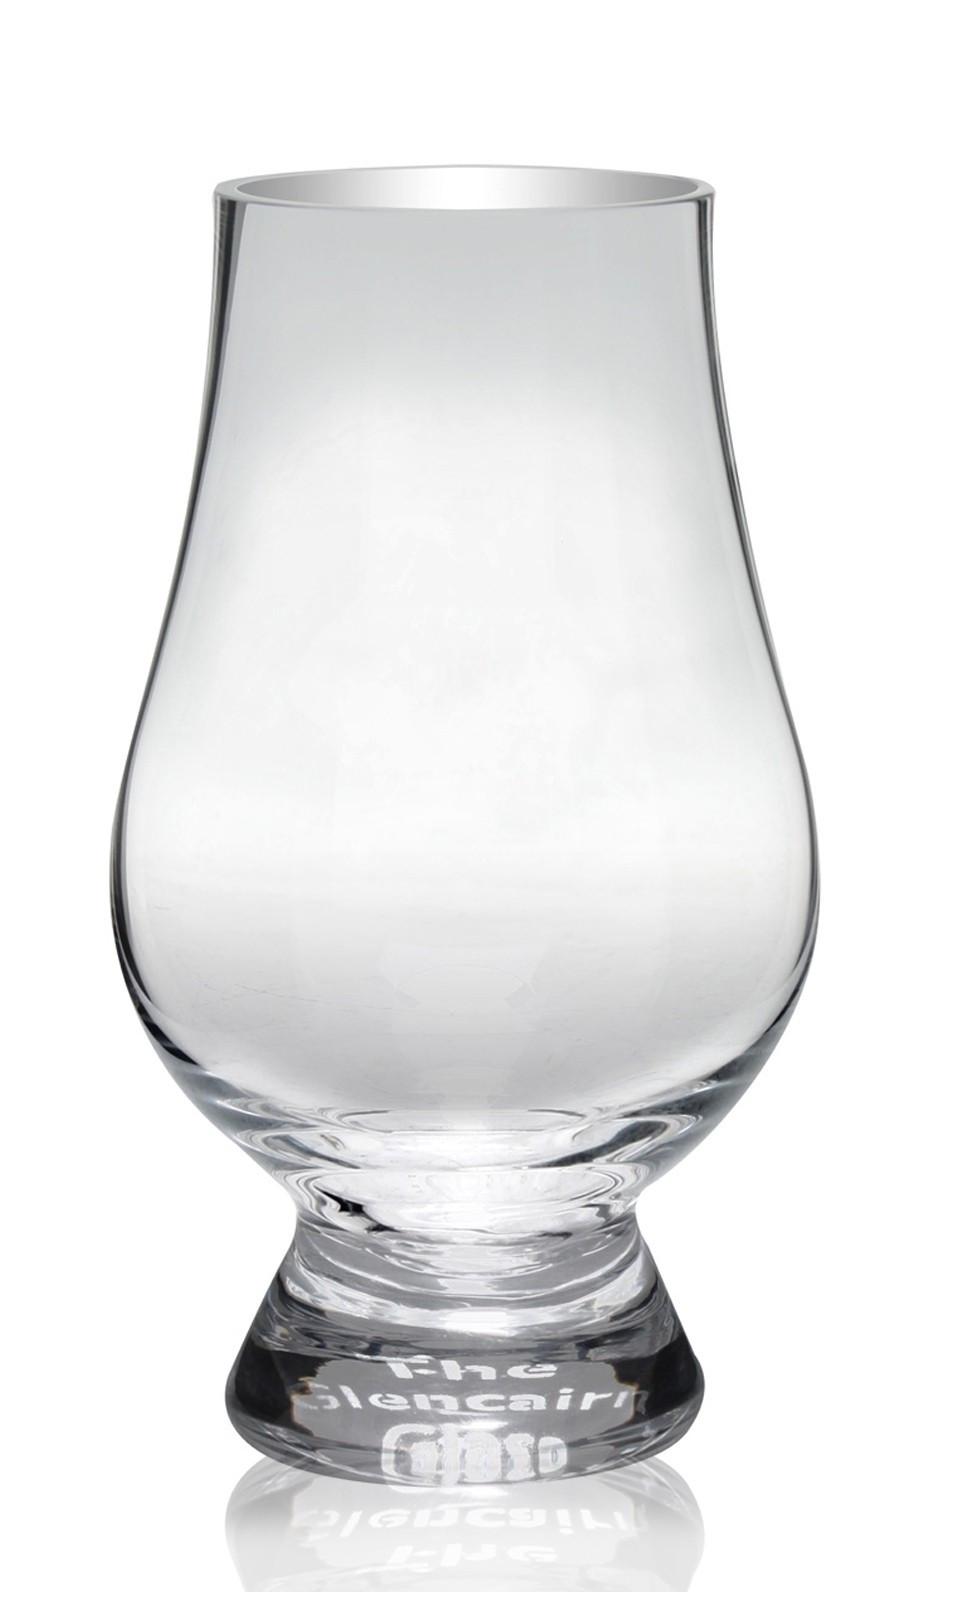 champagne glasses in vase of wine accessories within crystal whisky glass